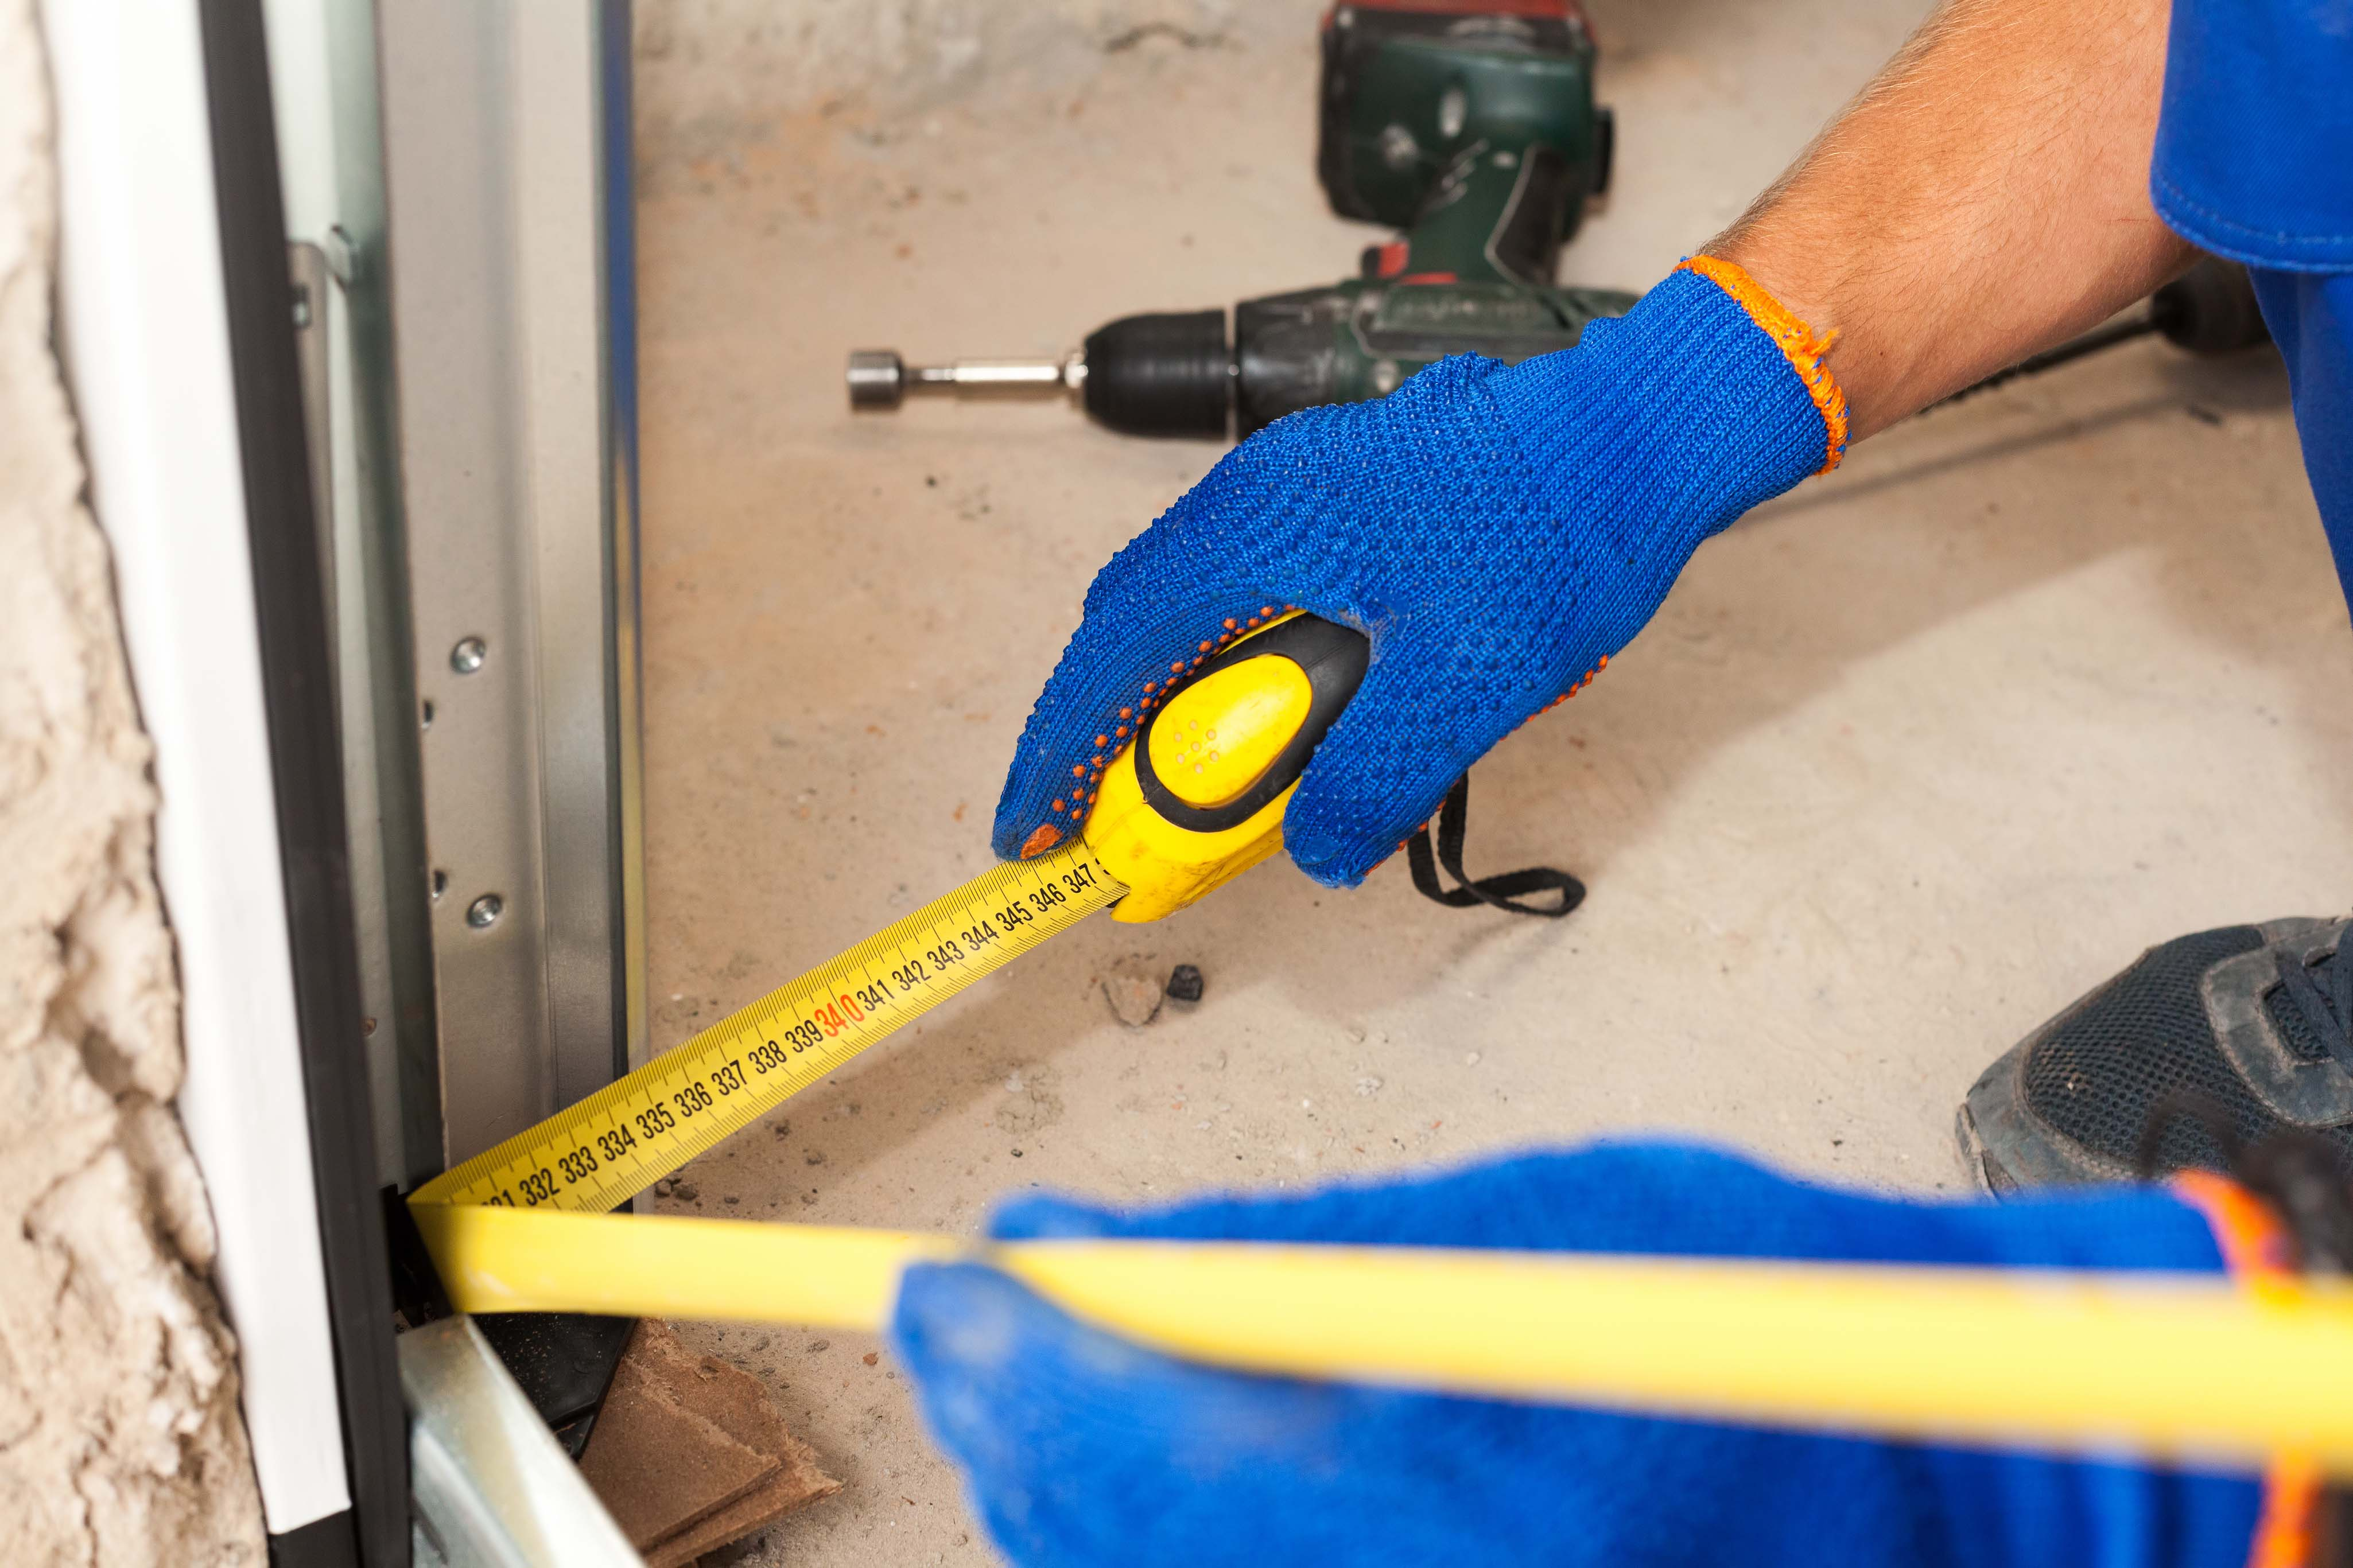 Thereu0027s no need to be worried about the expenses you think you might spend when it comes to installing a garage door seal. There are plenty of ways to own a ... & Tx Dallas Garage Door | Garage Door Repair Dallas pezcame.com